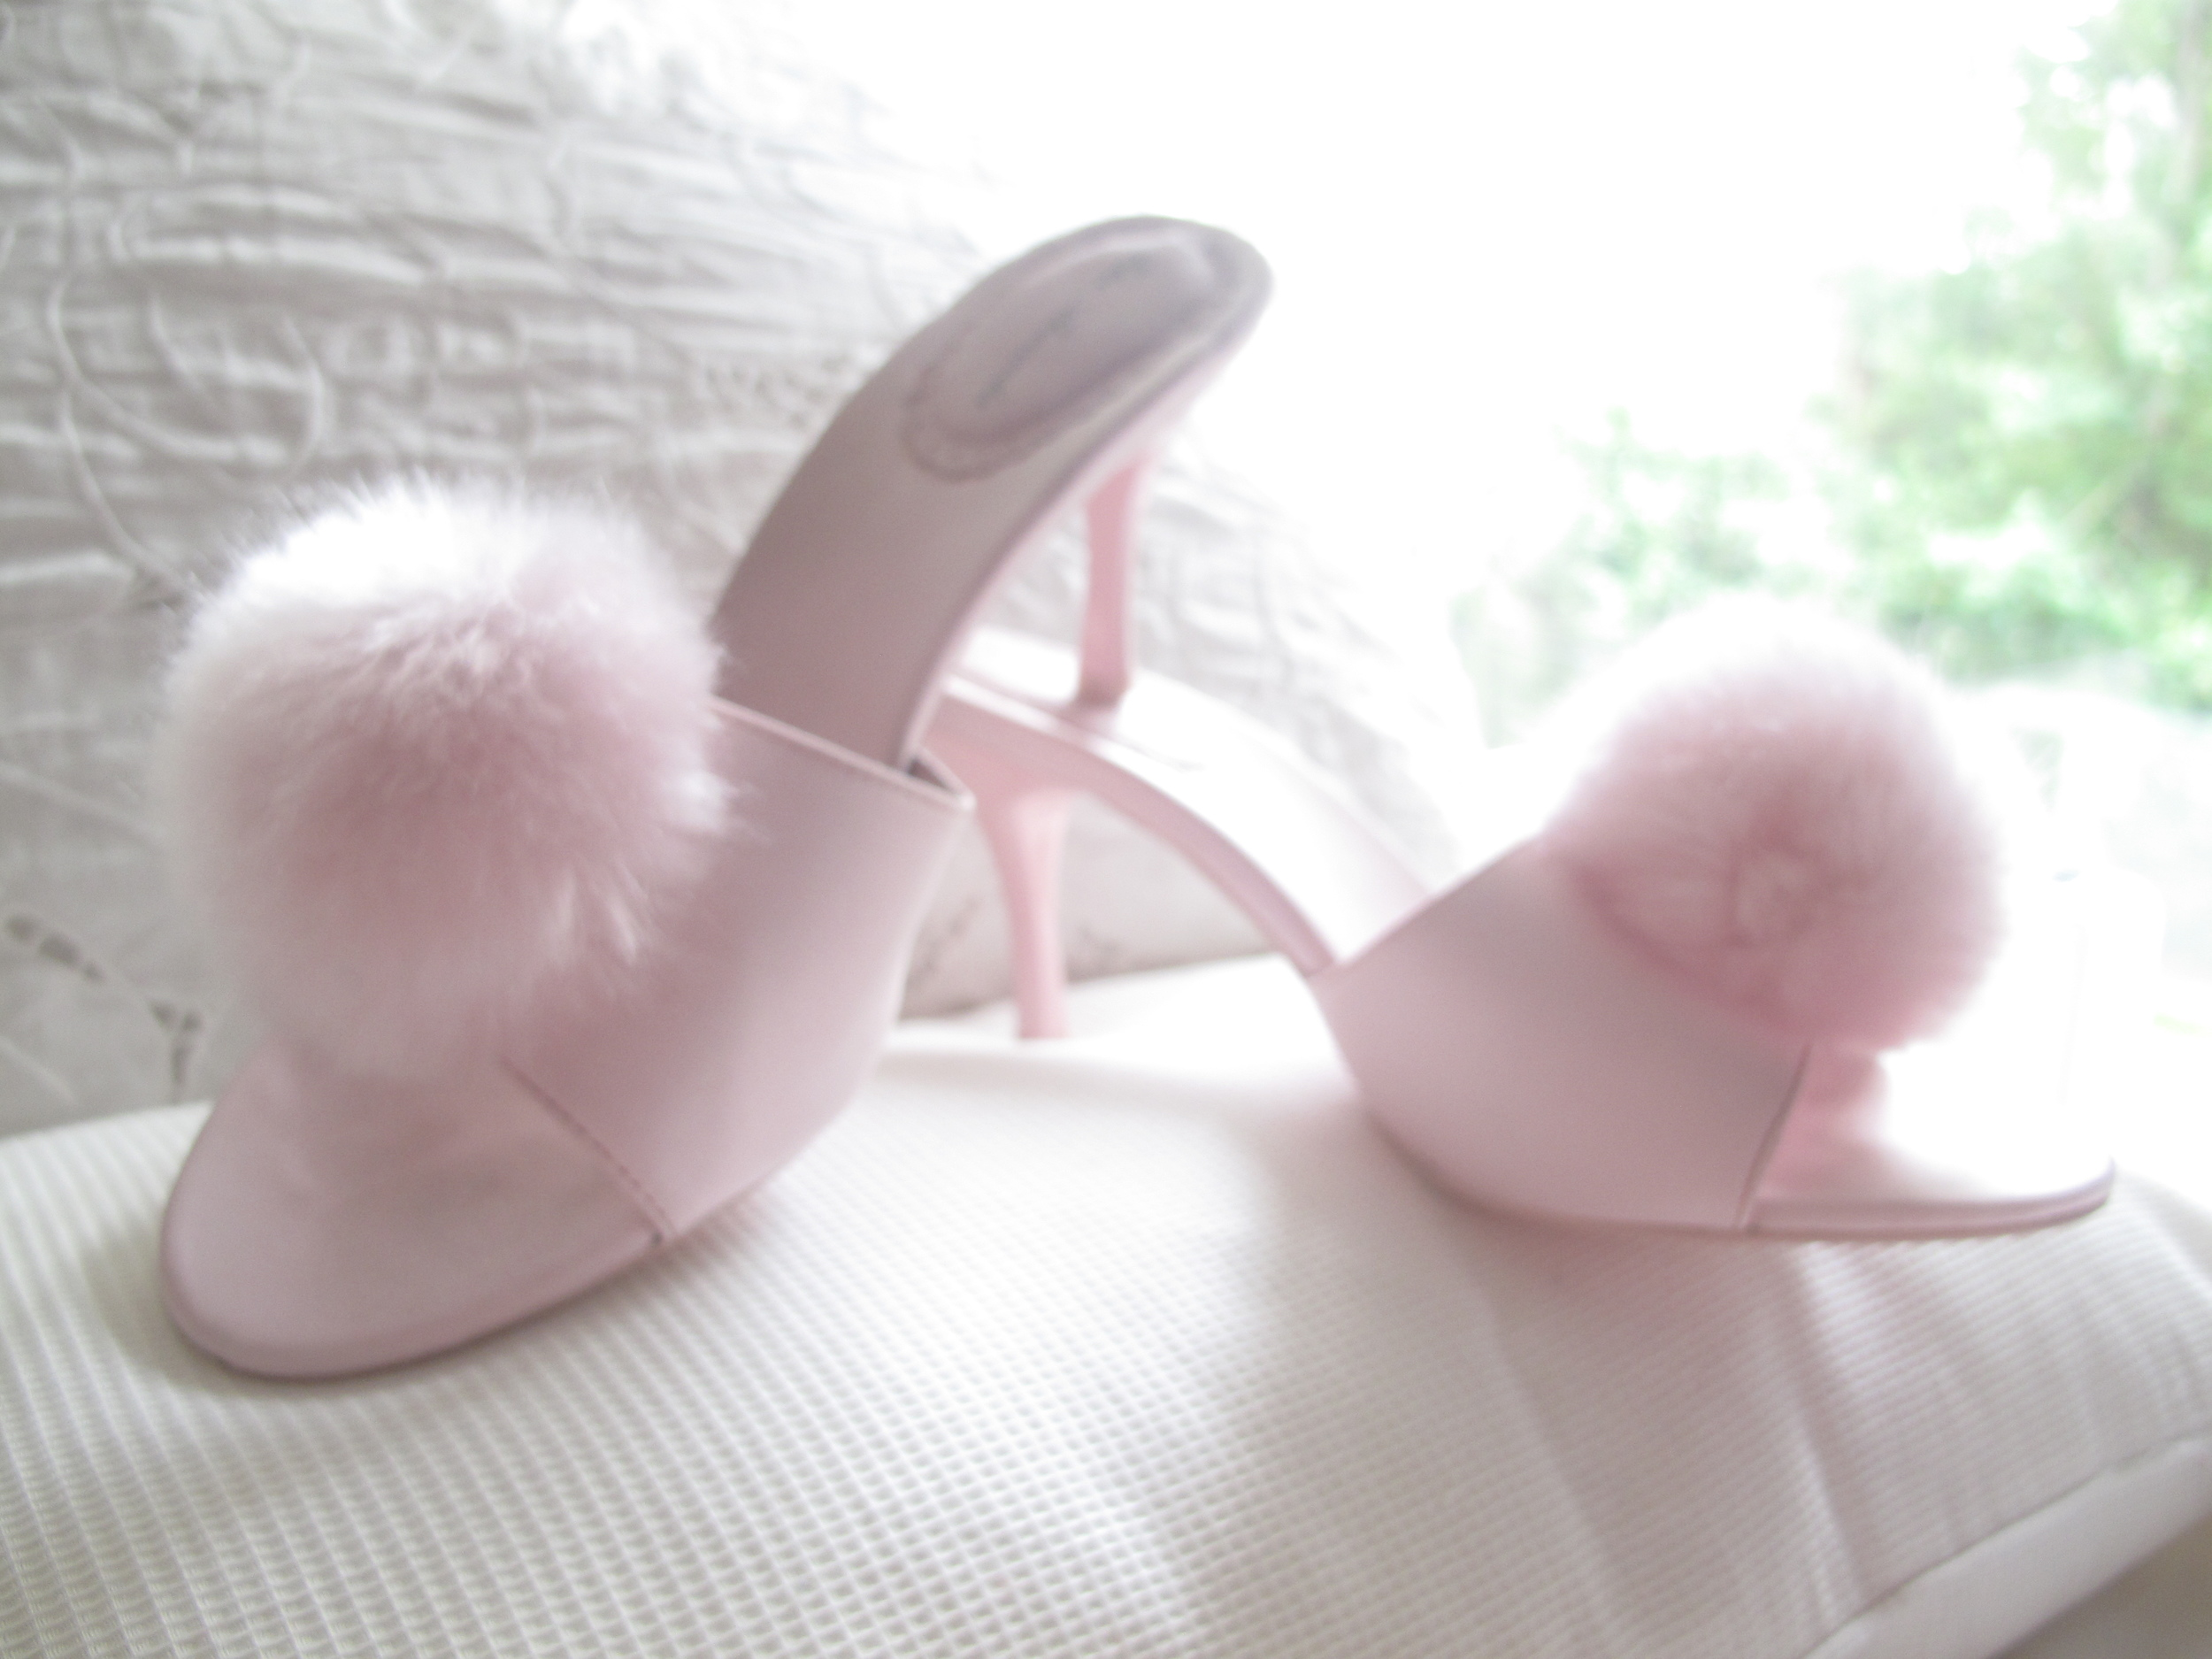 Pink marabou slippers in soft lighting